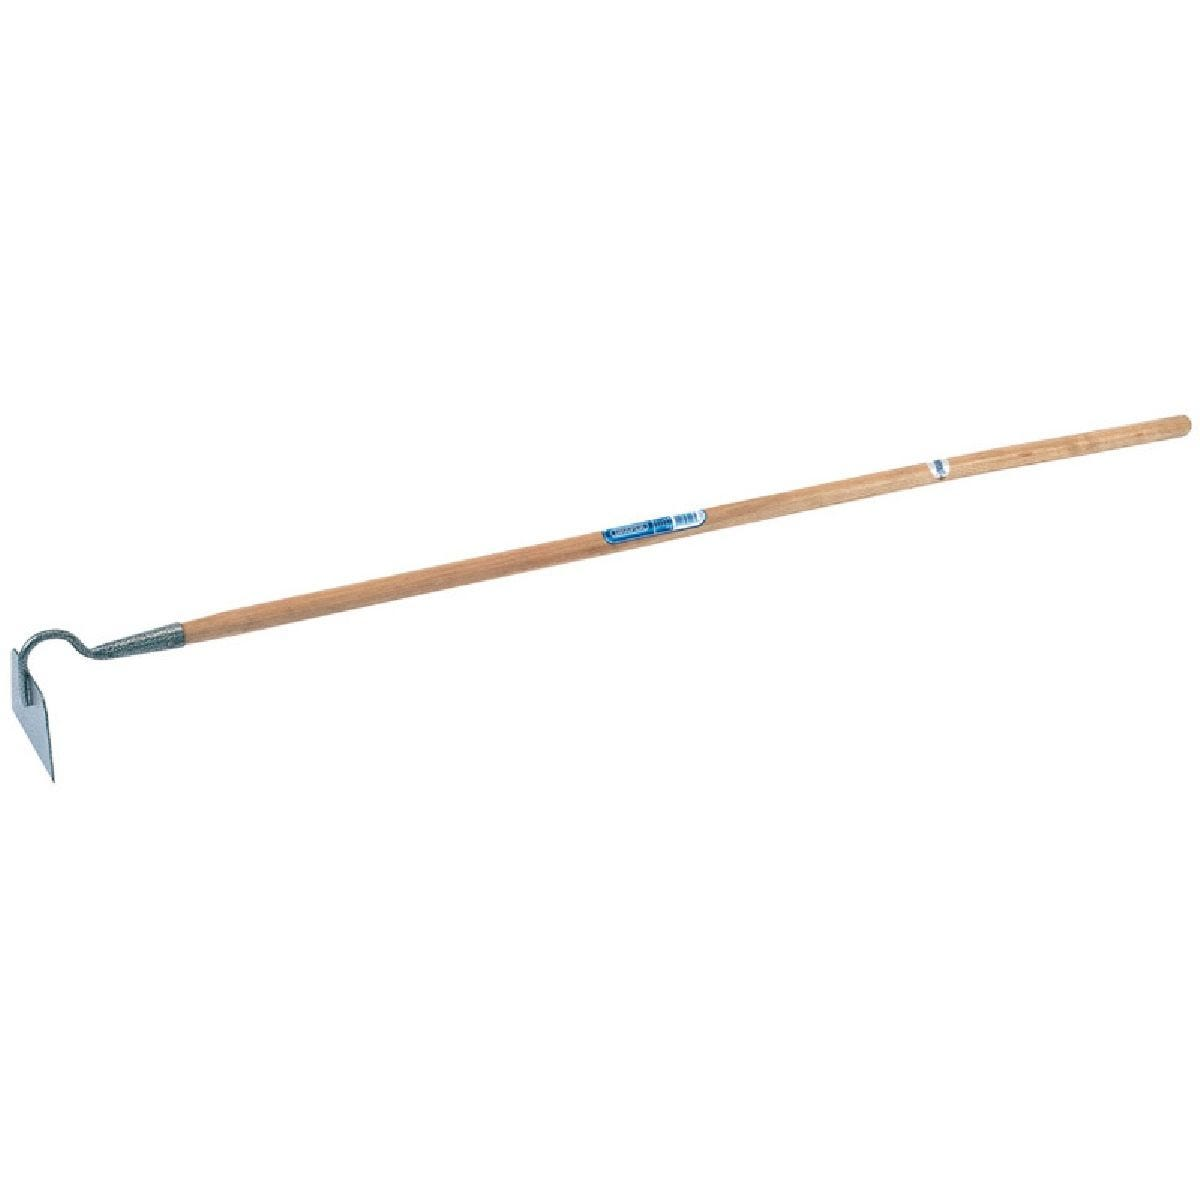 Draper Carbon Steel Draw Hoe with Ash Handle